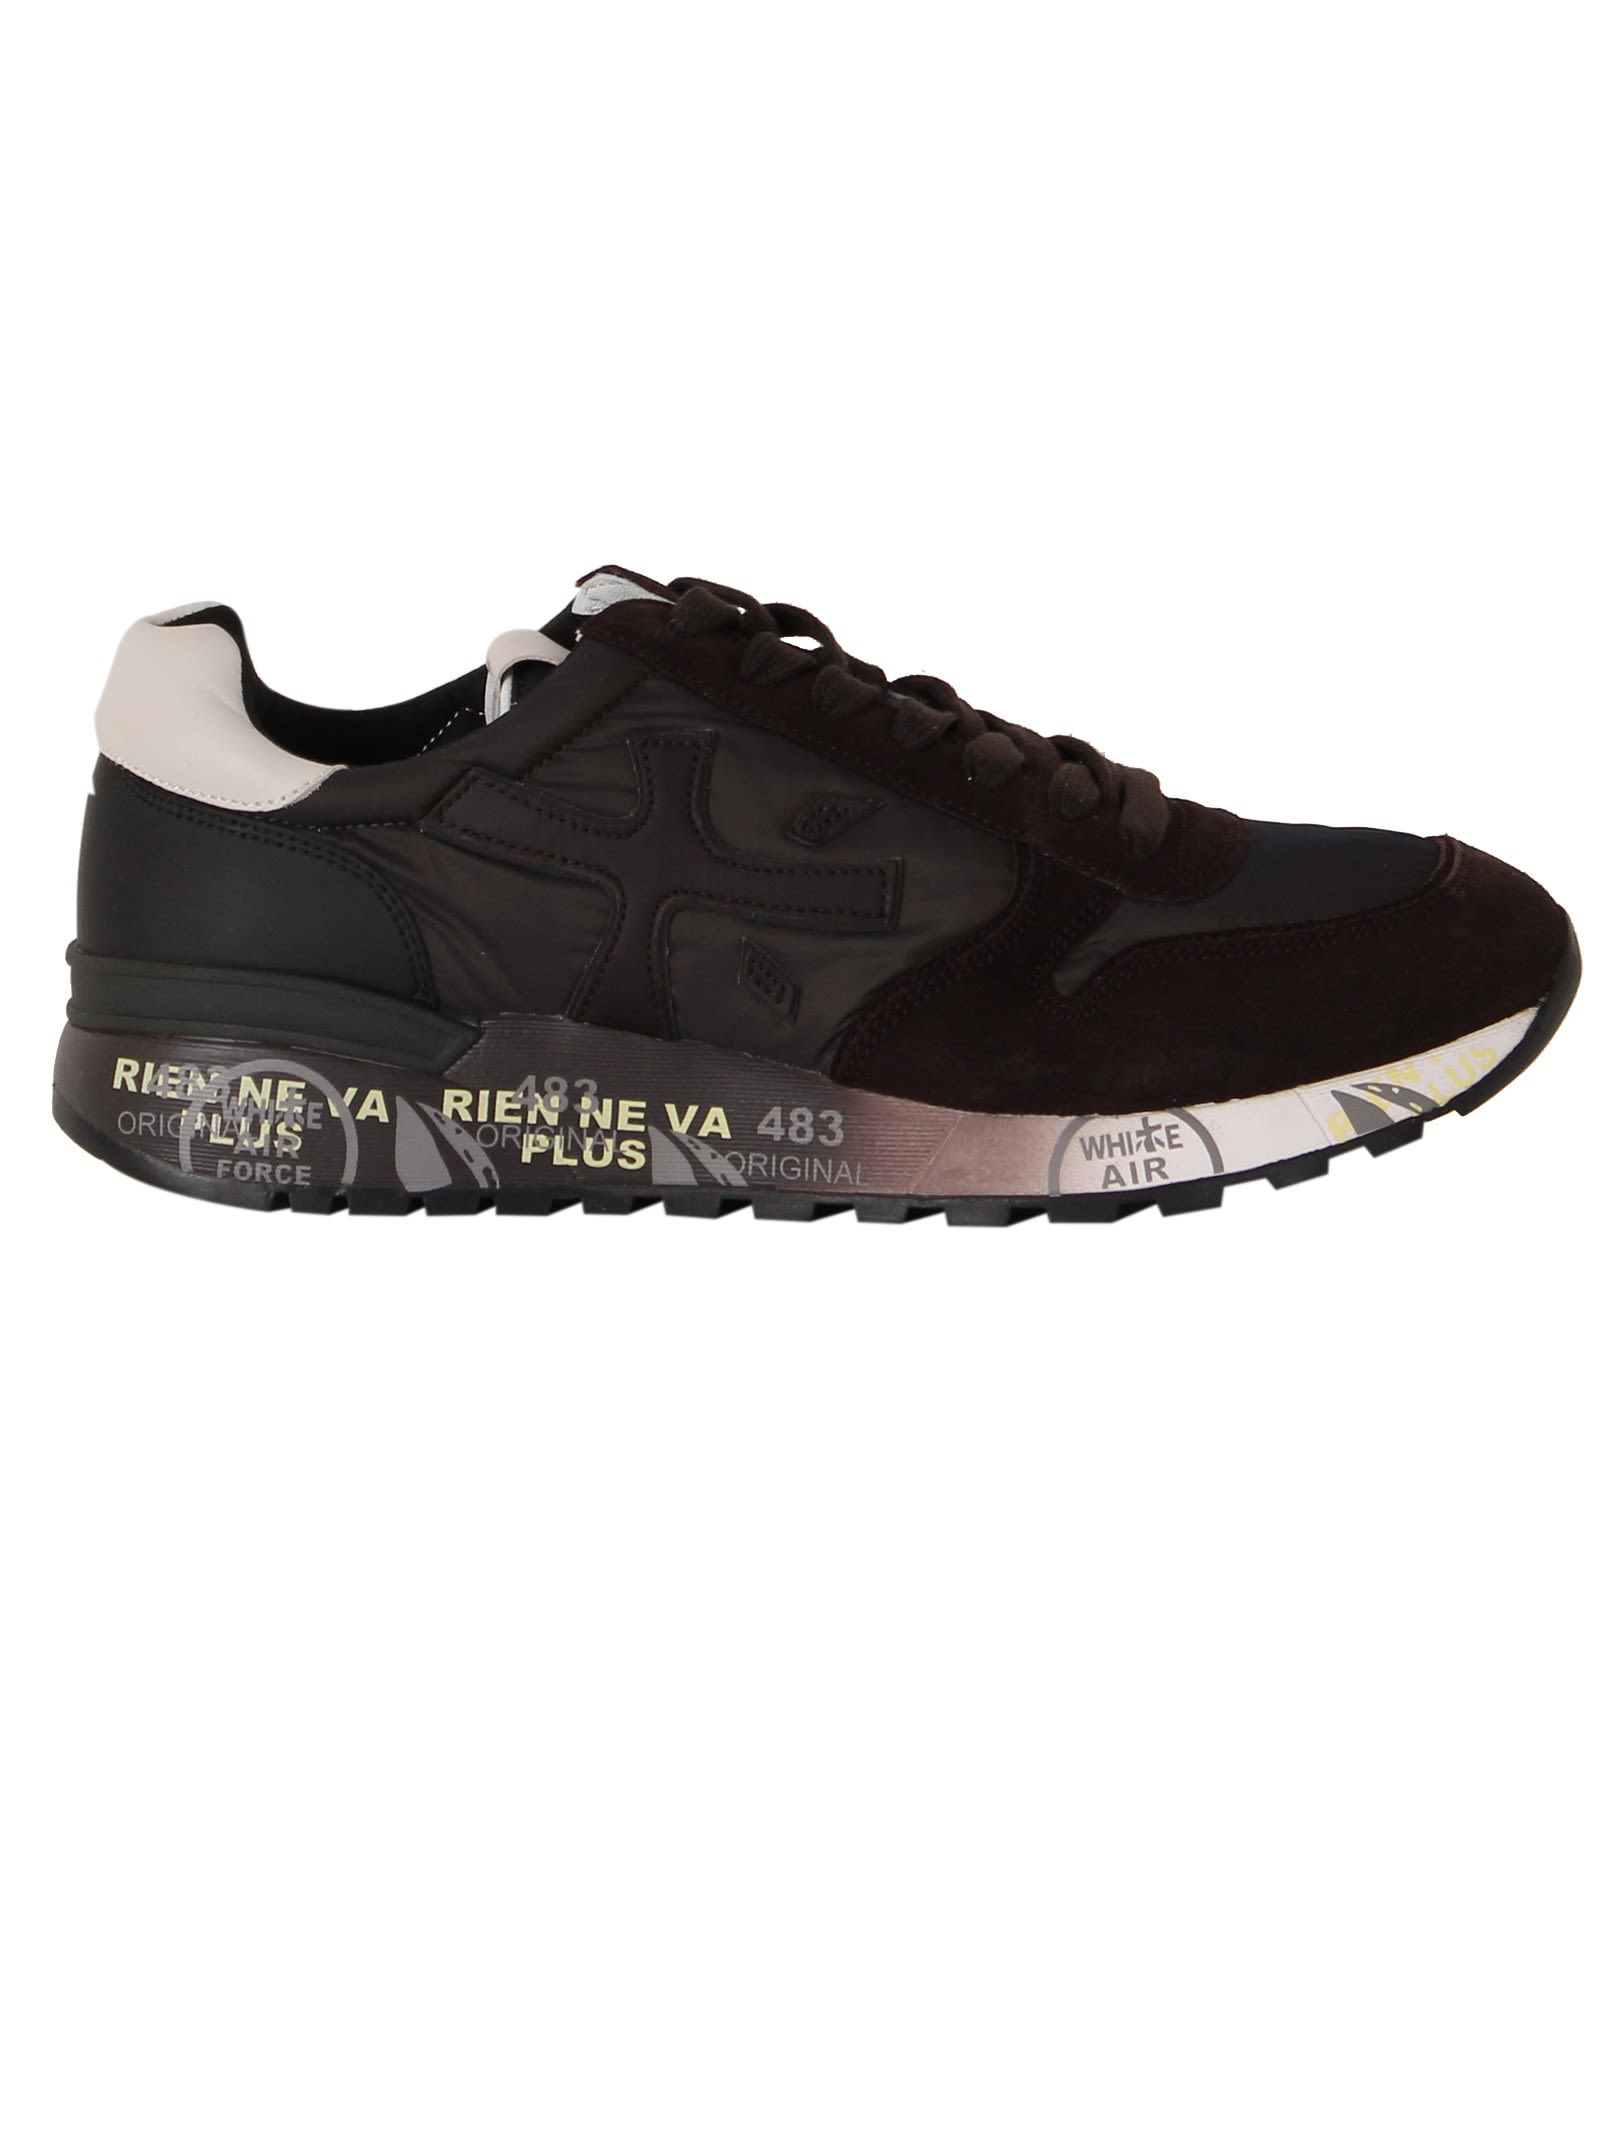 Premiata Brown Fabric Mick Sneakers